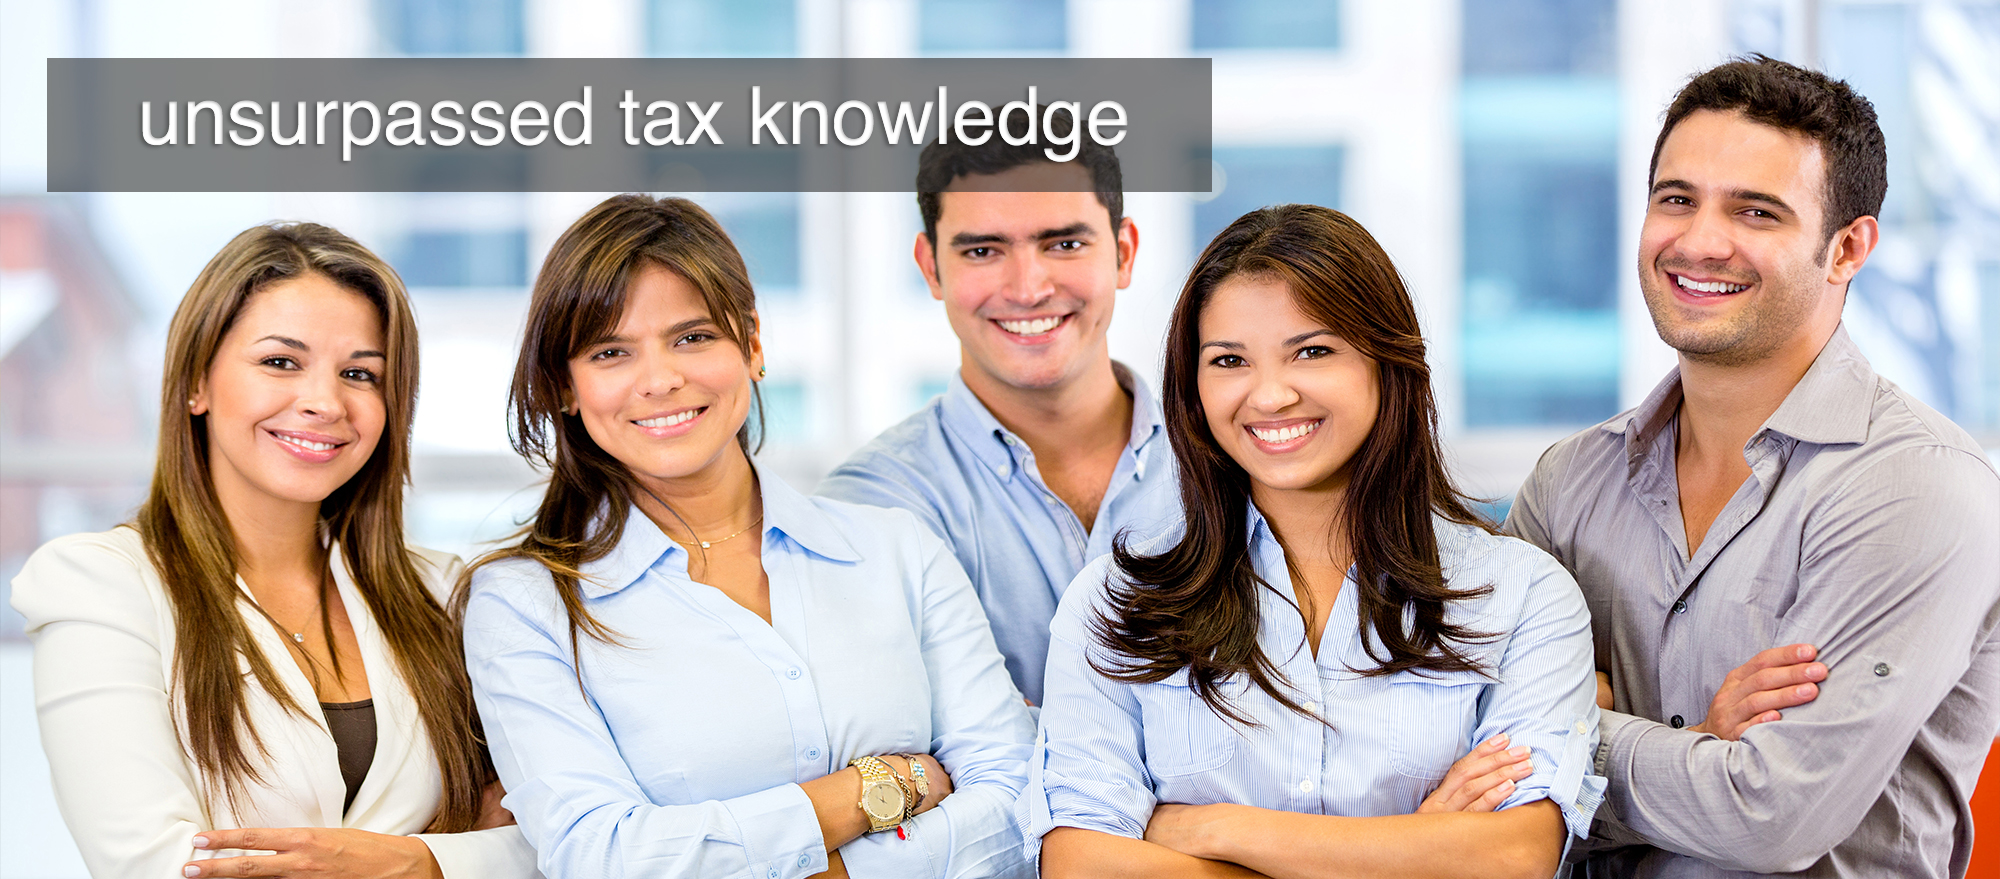 unsurpassed tax knowledge